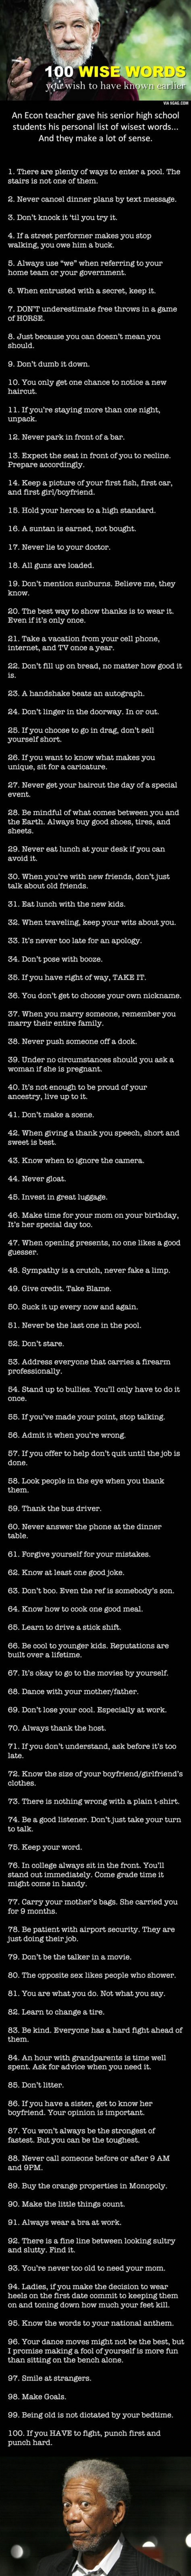 100 Wise Words of Advice You Wish You Knew Earlier